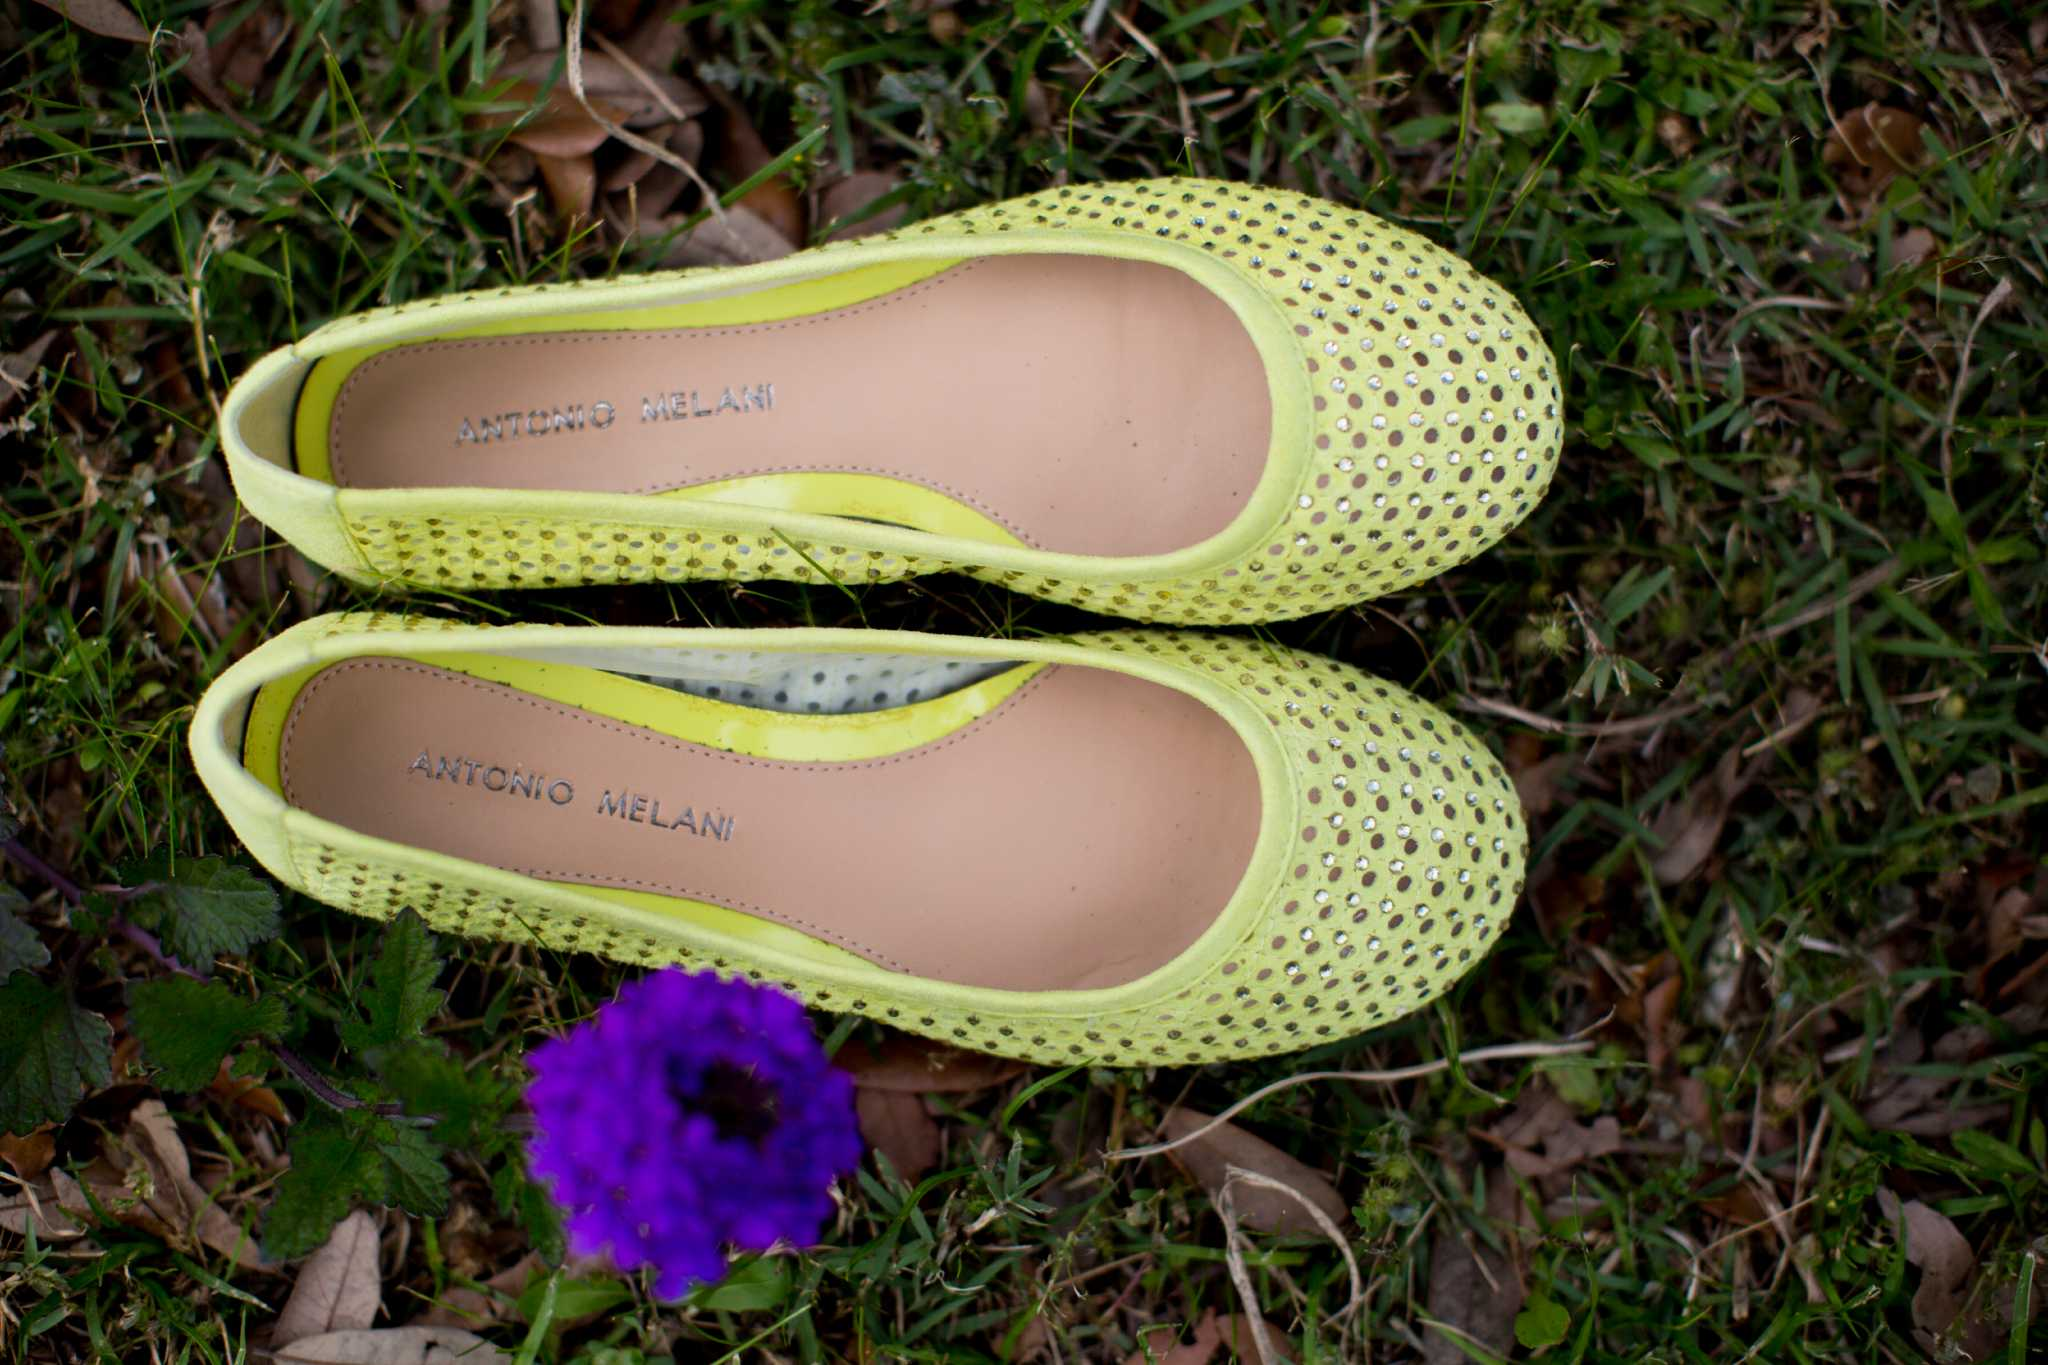 cafbde17b9c3 Spring flat-shoe trend will keep your feet happy - HoustonChronicle.com